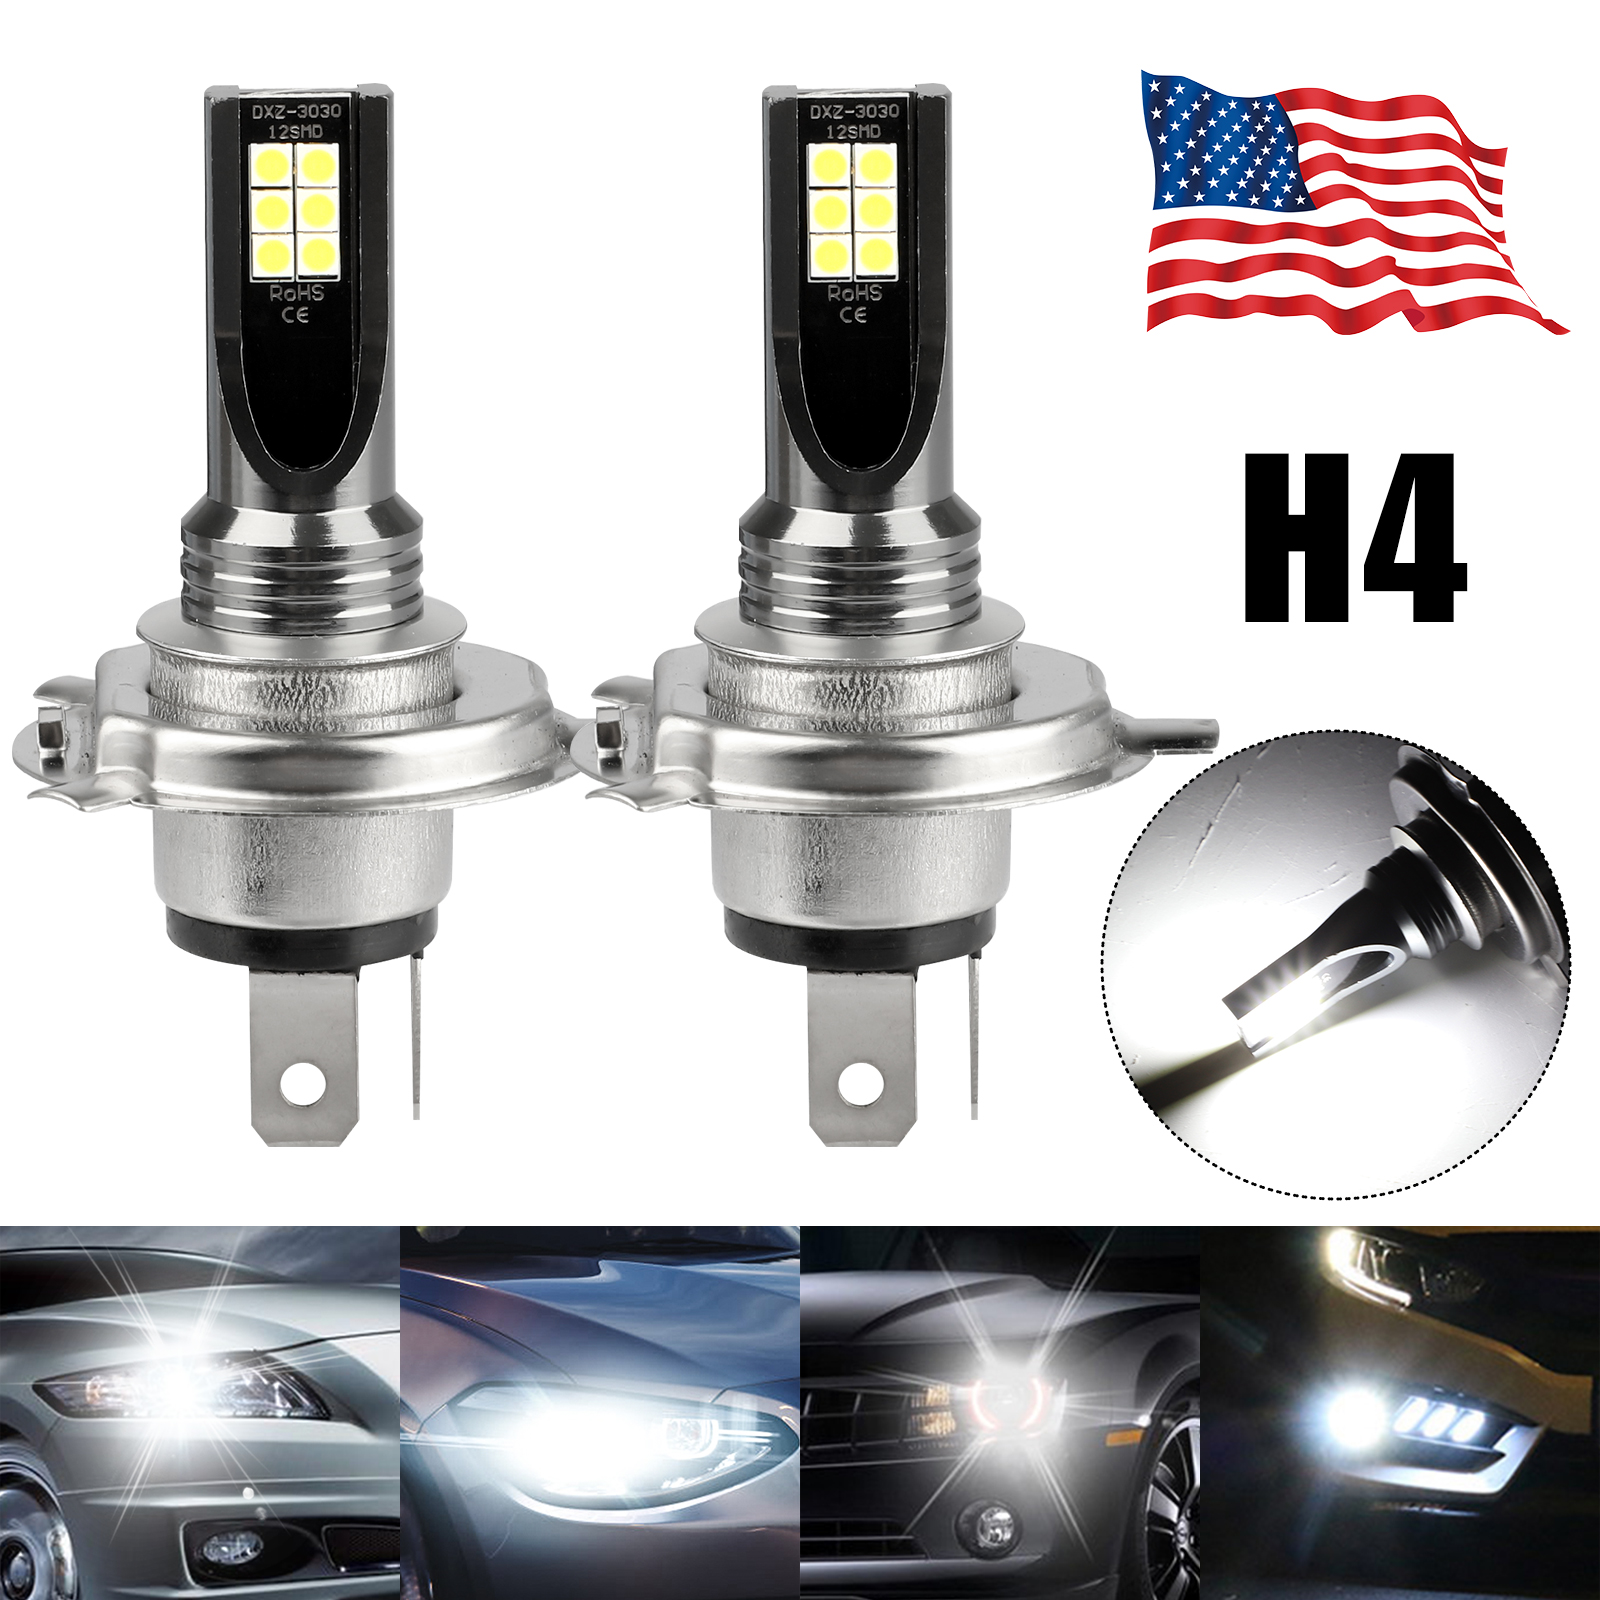 2X-H4-9003-LED-Headlight-Bulbs-Kit-High-Low-Beam-Super-Bright-100W-14000LM-6000K